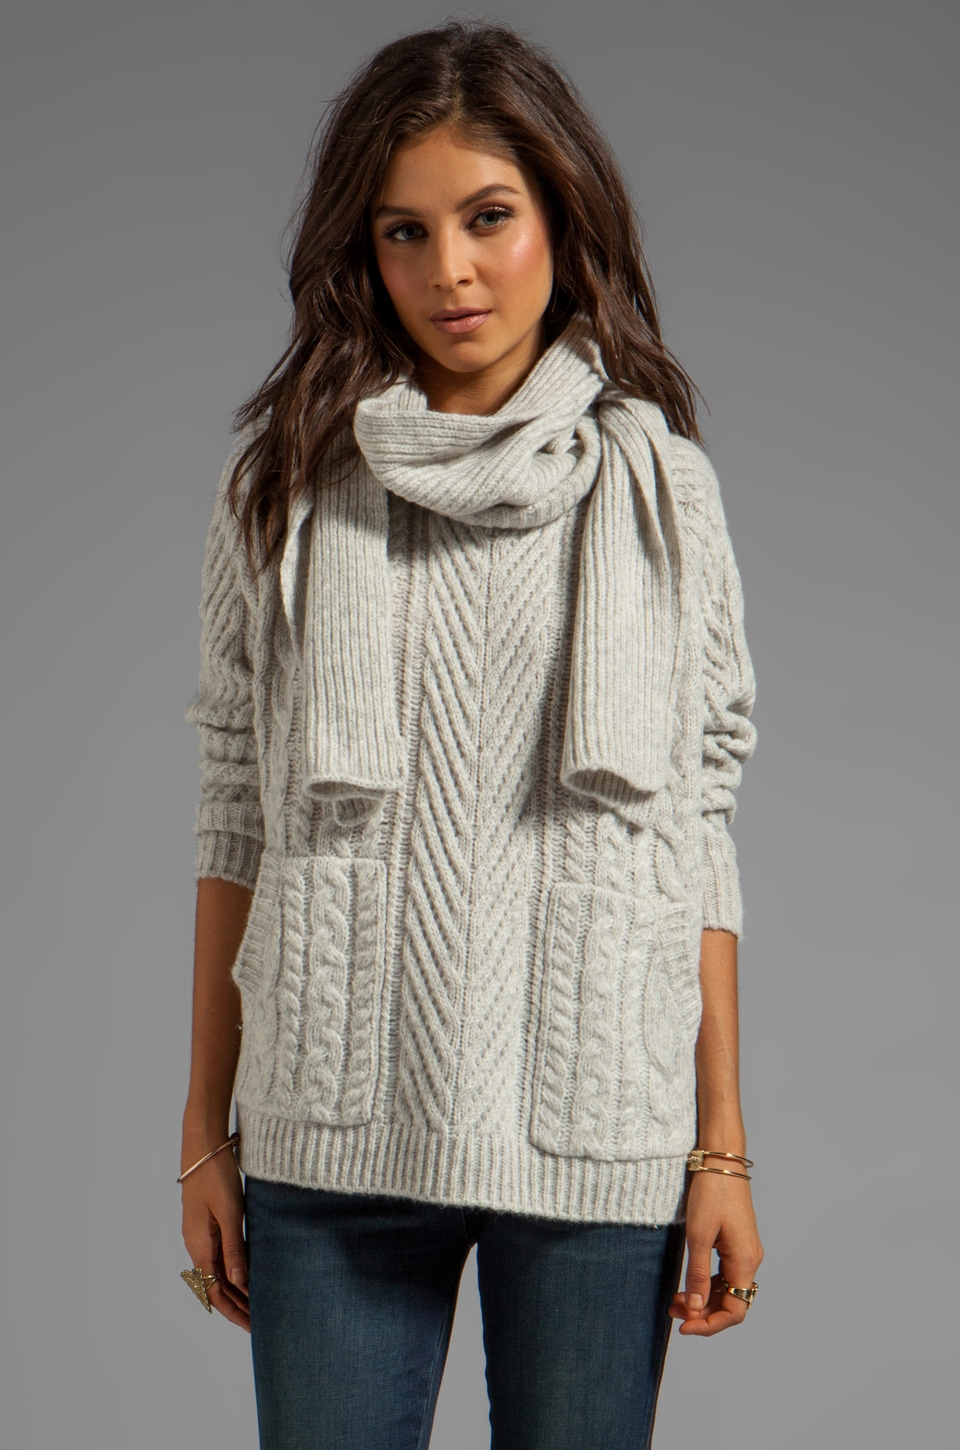 Marc by Marc Jacobs Connolly Sweater in Antique White Melange